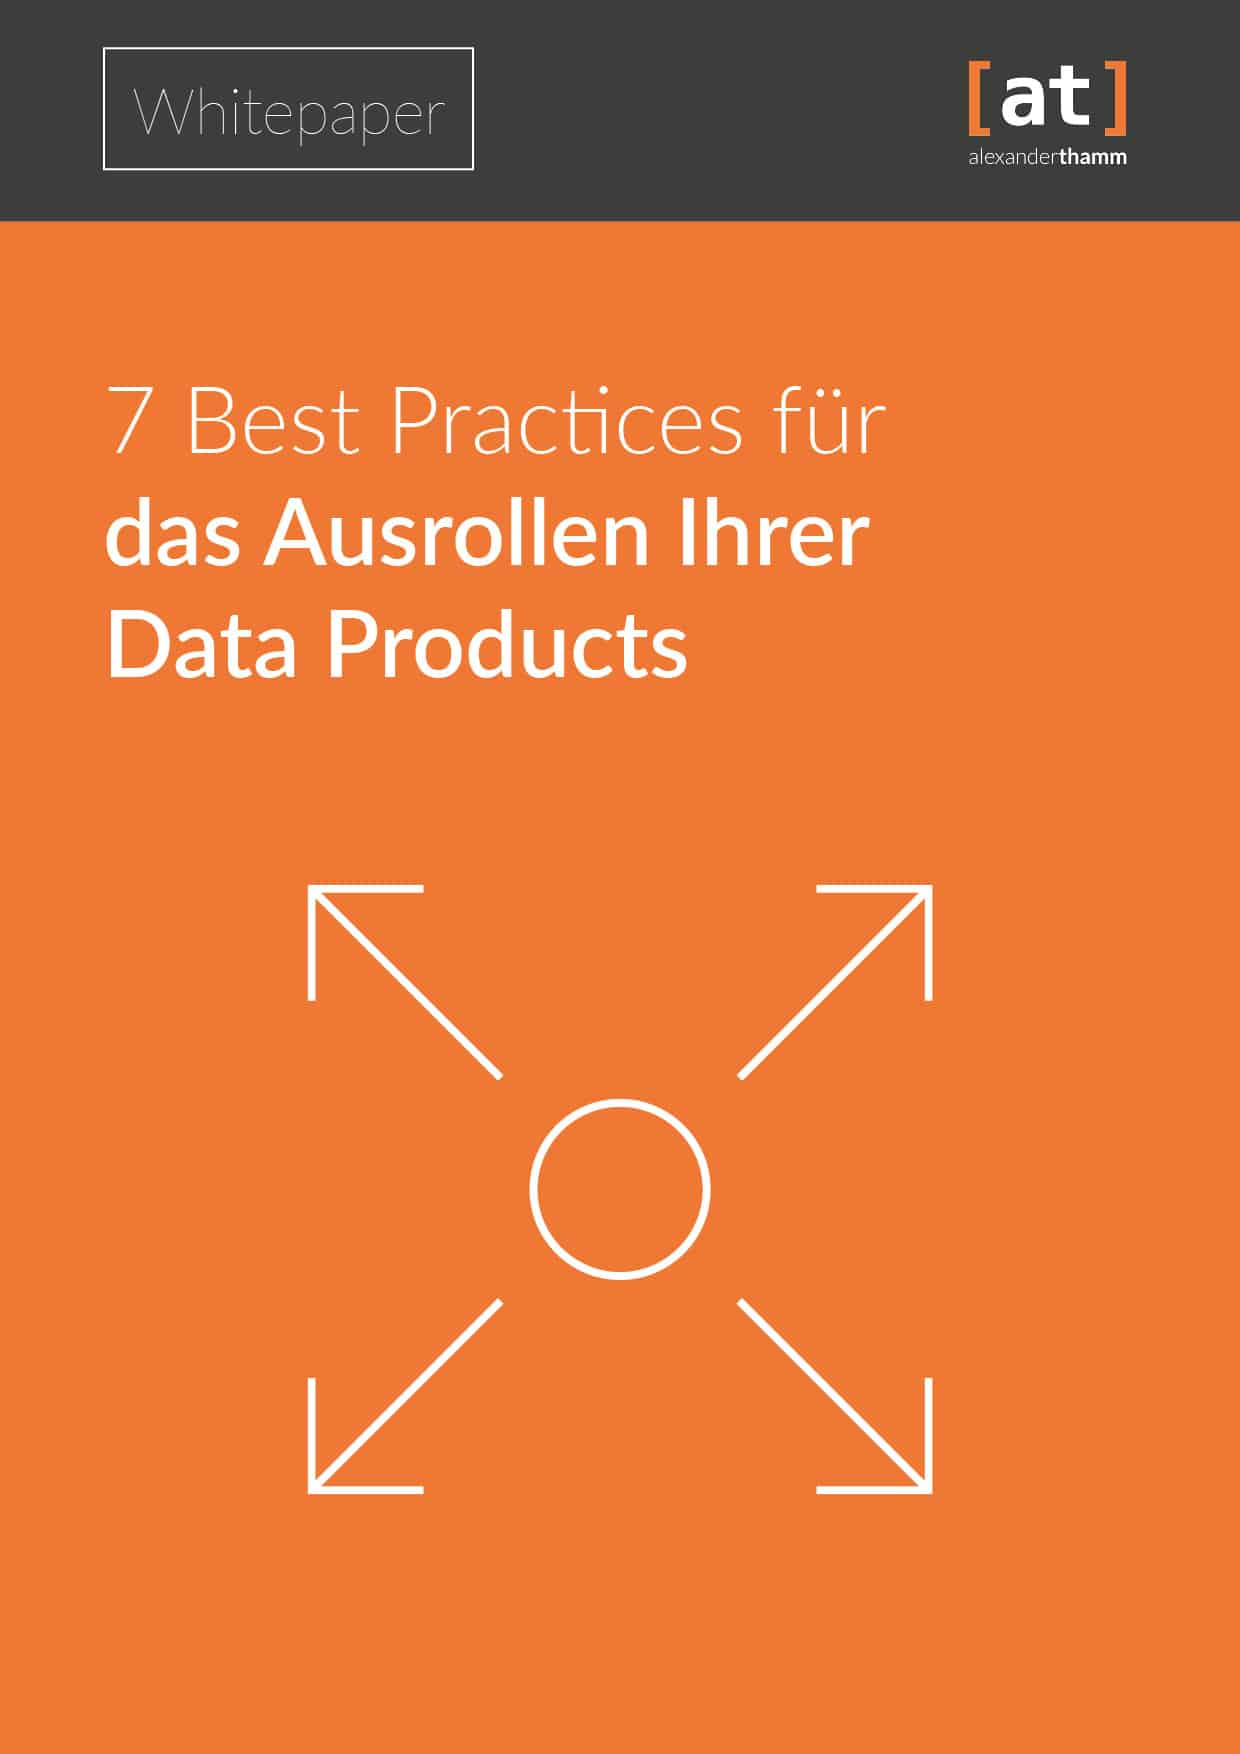 Ausrollen von Data Products_Whitepaper